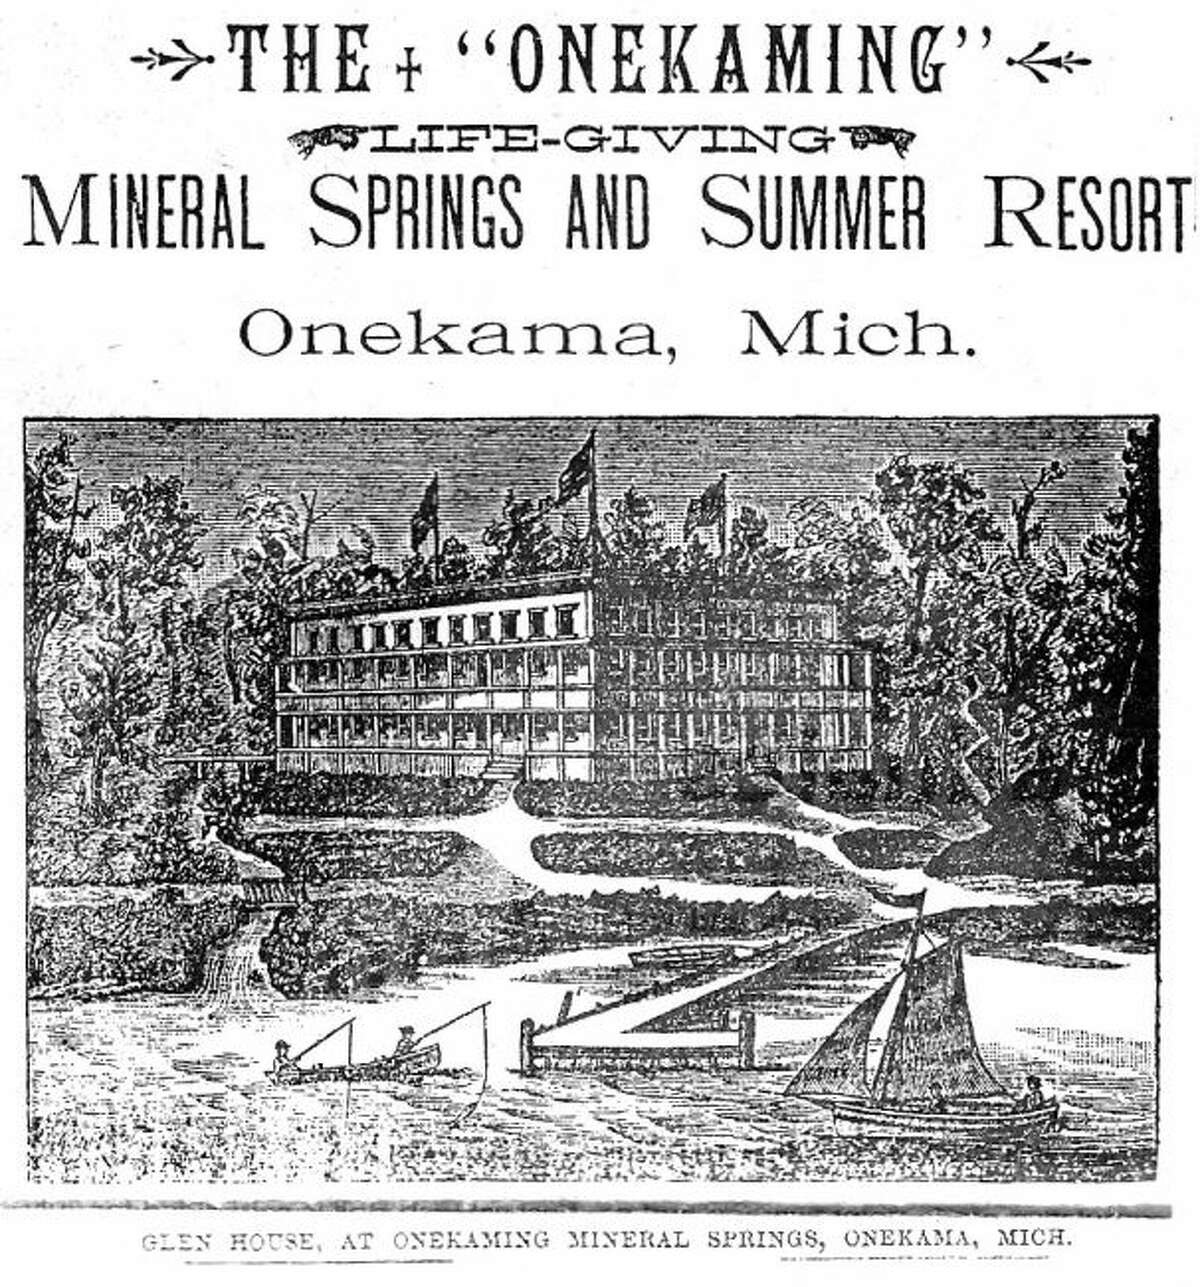 The Glen House at Mineral Springs in Onekama is shown in this advertisement from a 1900 Manistee newspaper.